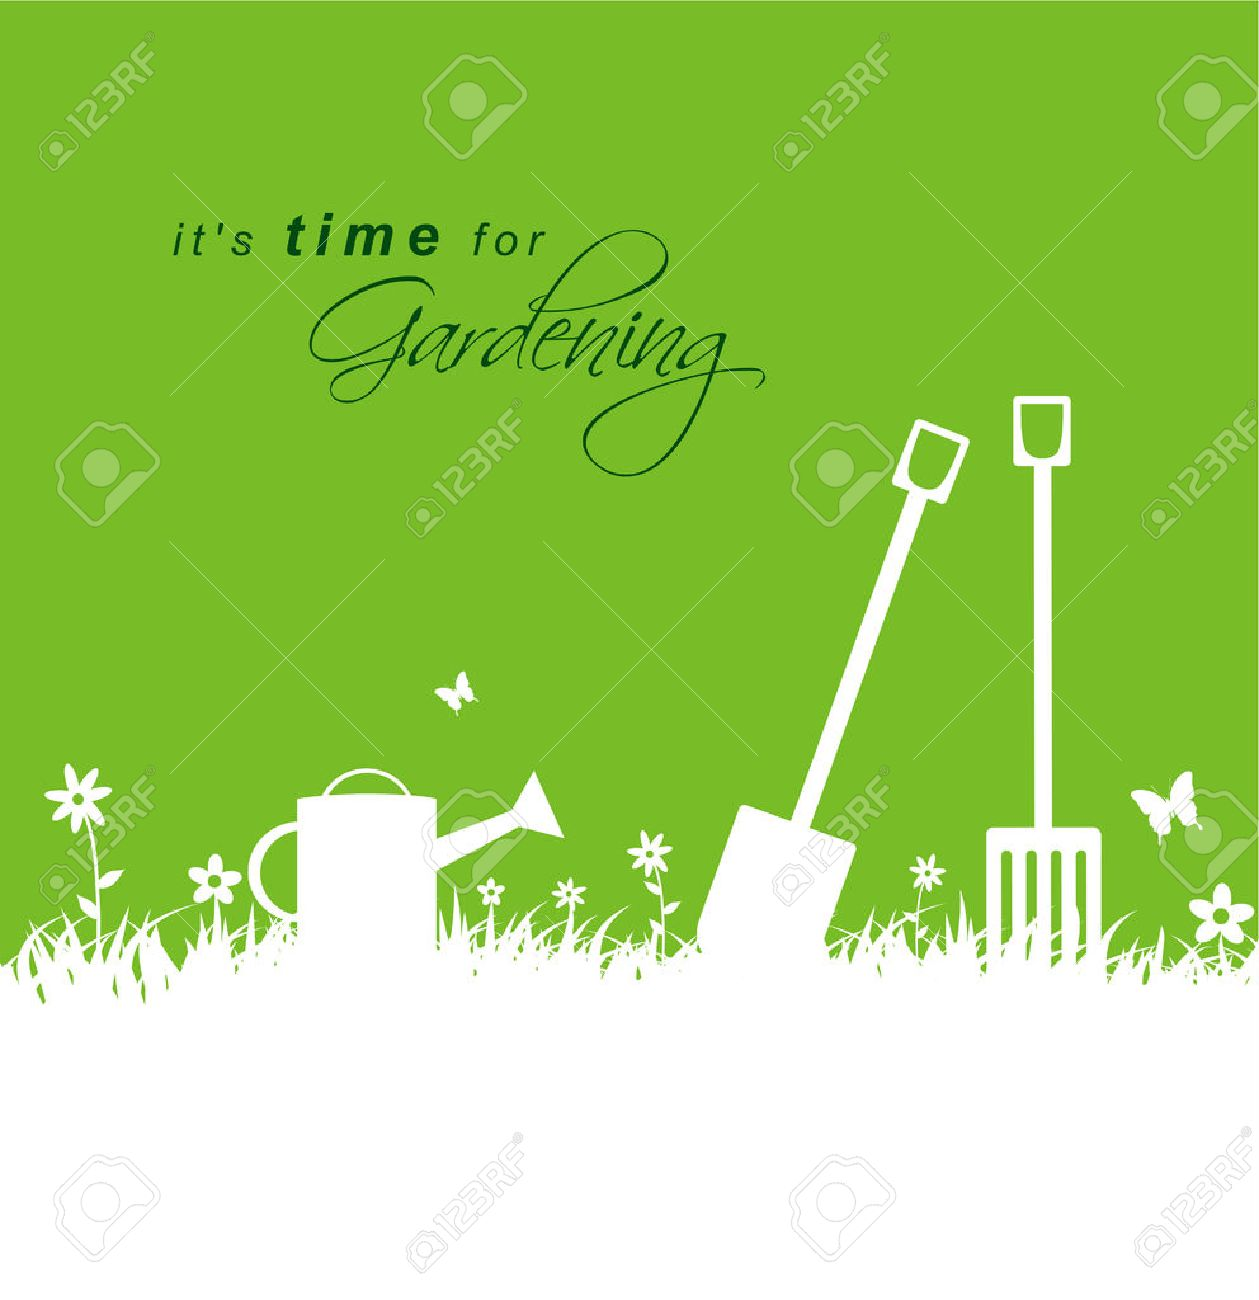 It\'s time for gardening .Spring gardening background with spade, rake and watering can - 39269054